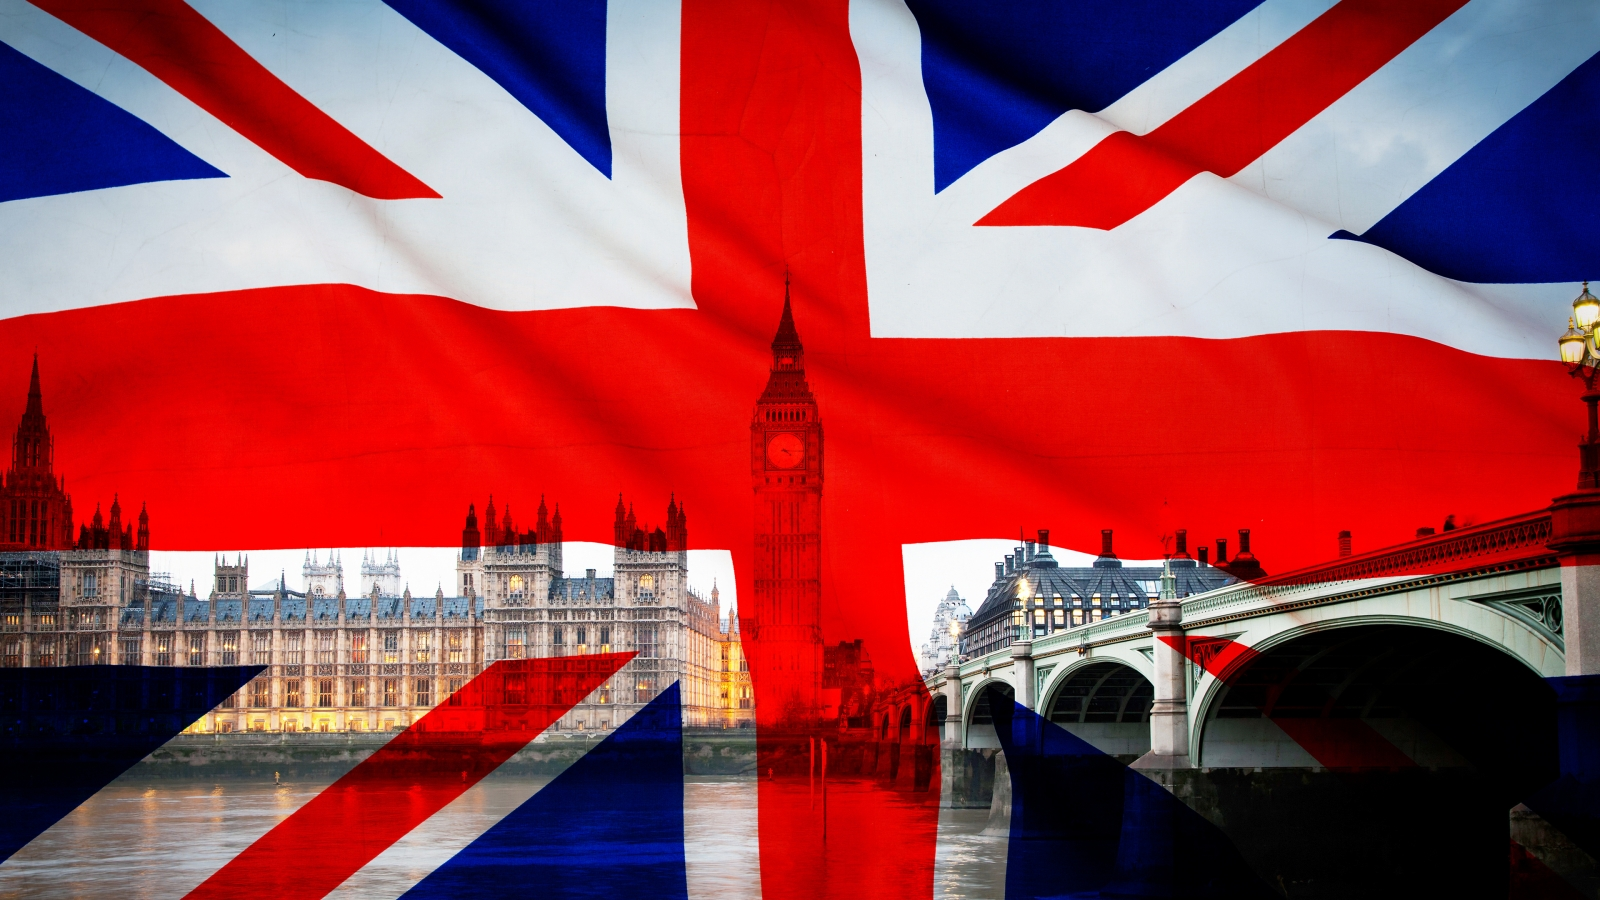 Union Jack – Flag of the UK for 1600 x 900 HDTV resolution